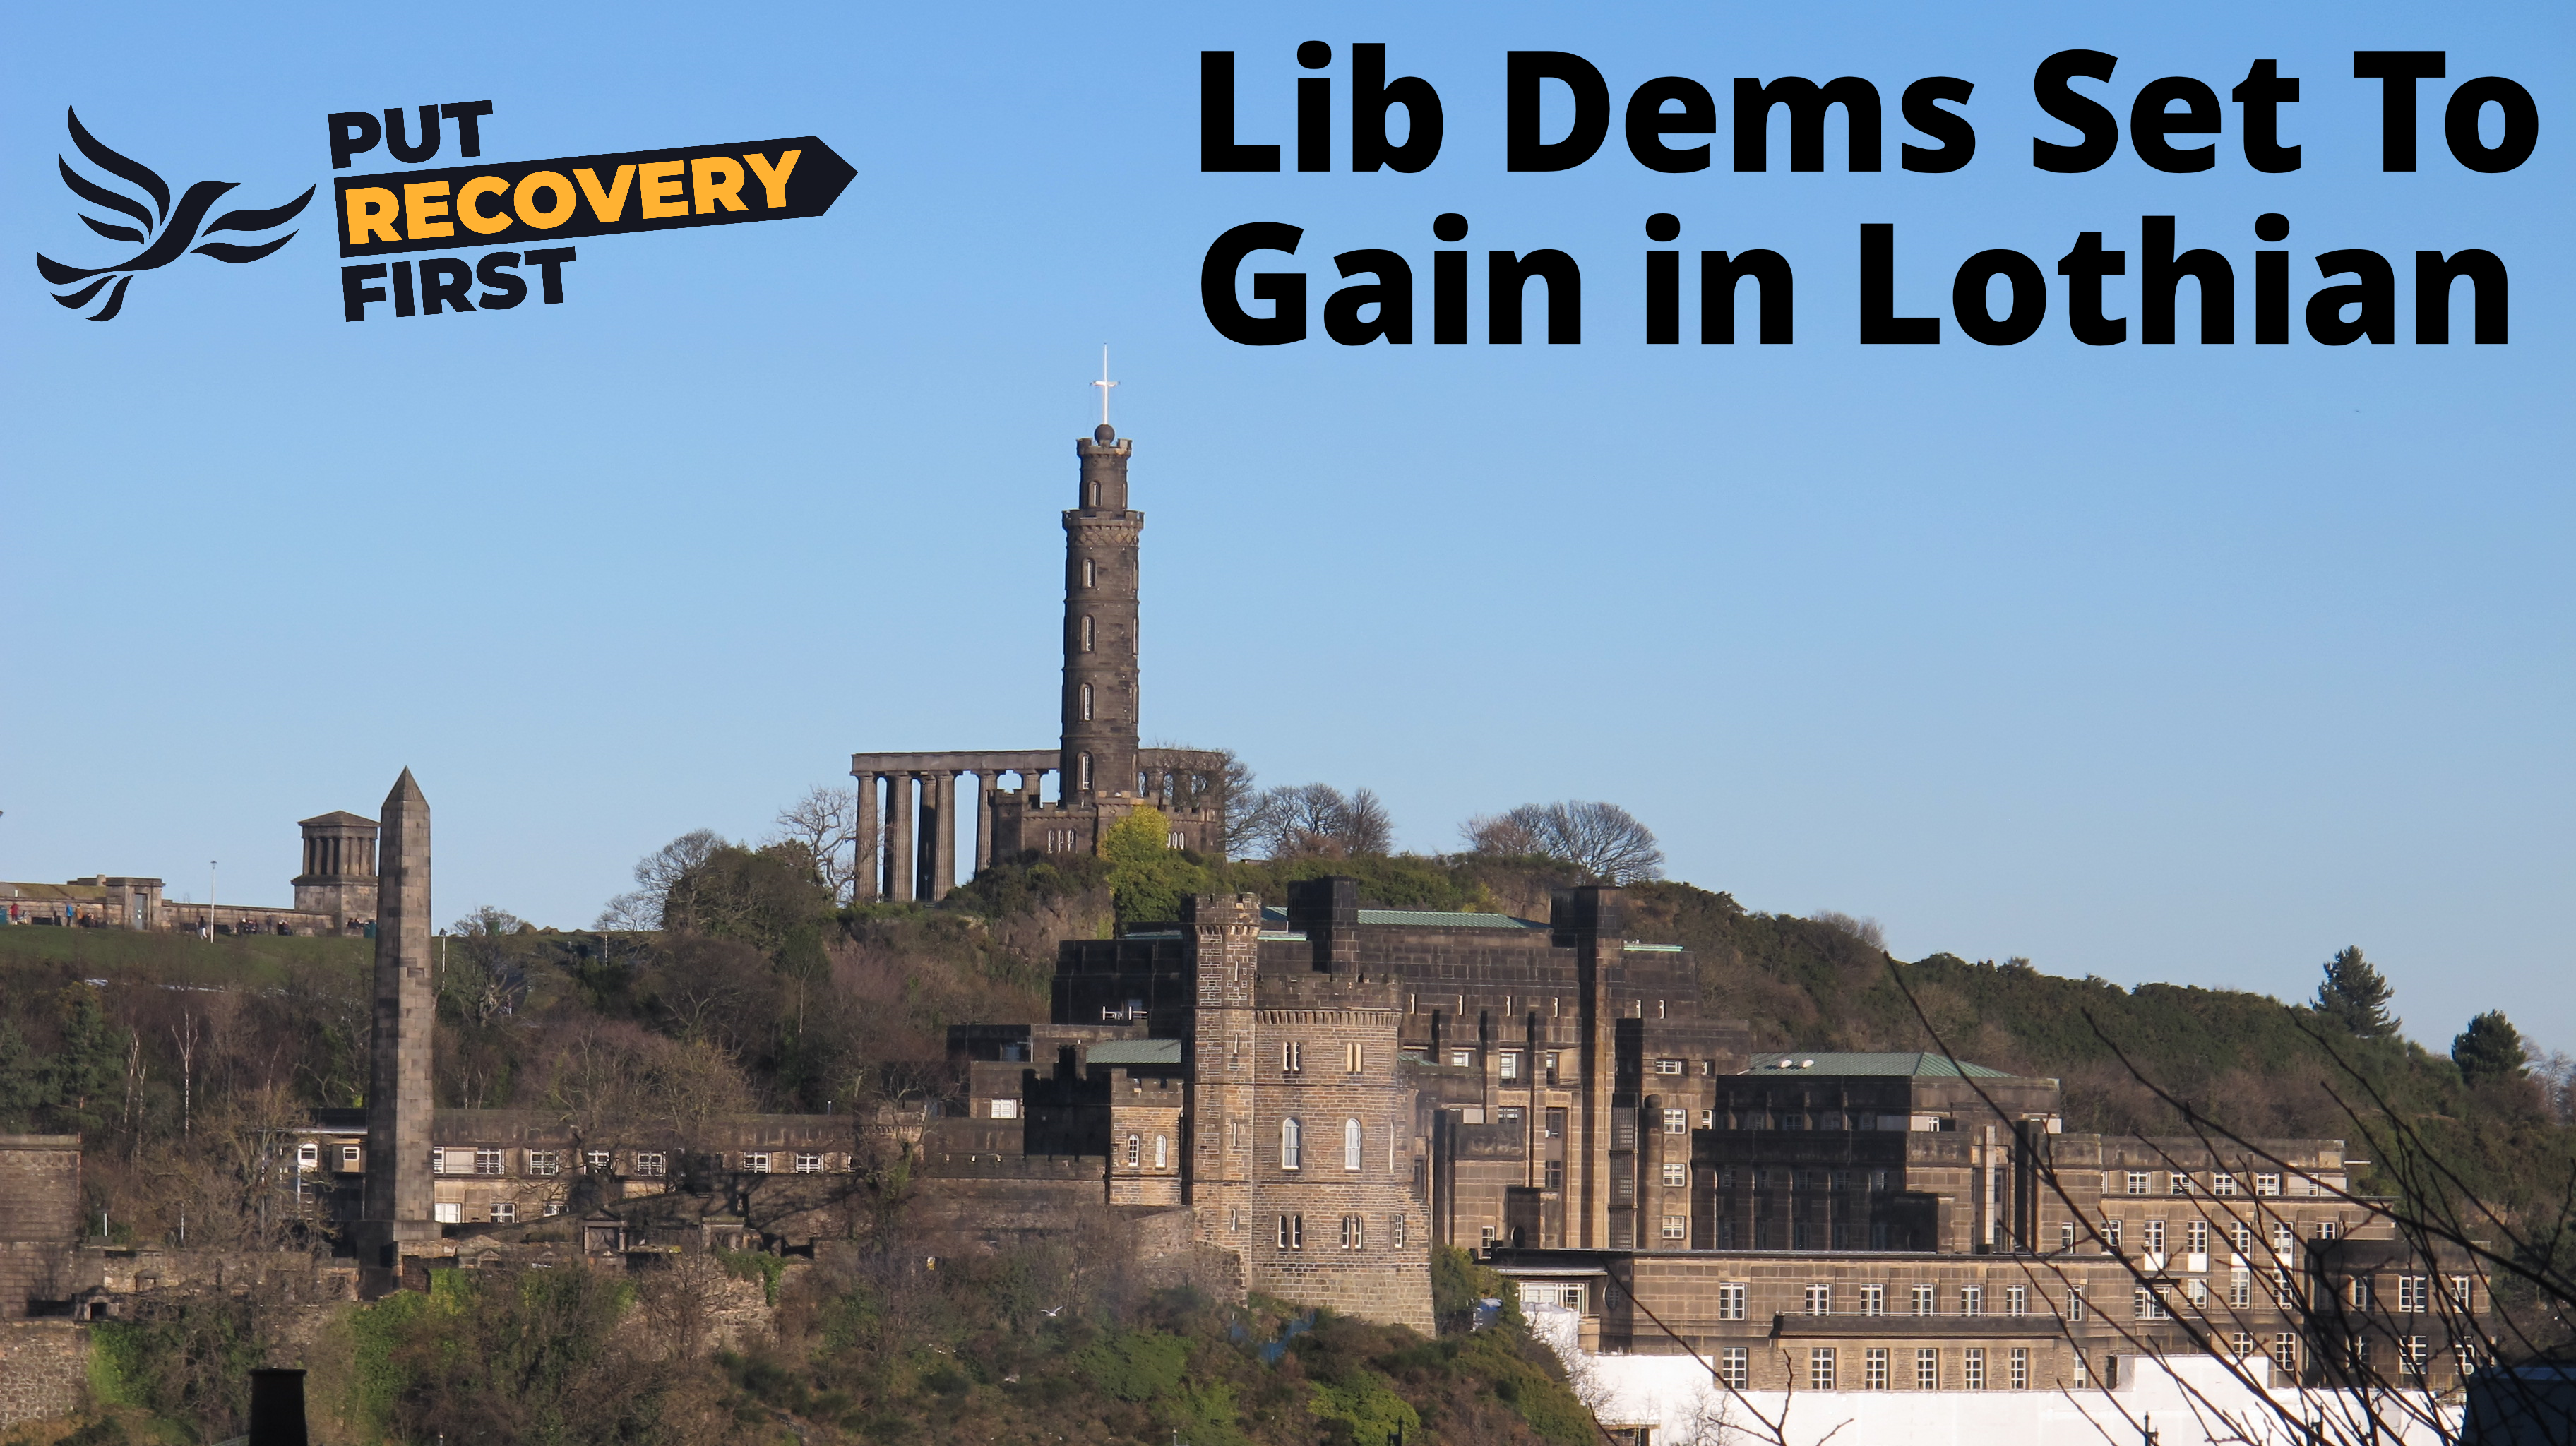 Put Recovery First - Lib Dems set to gain in Lothian